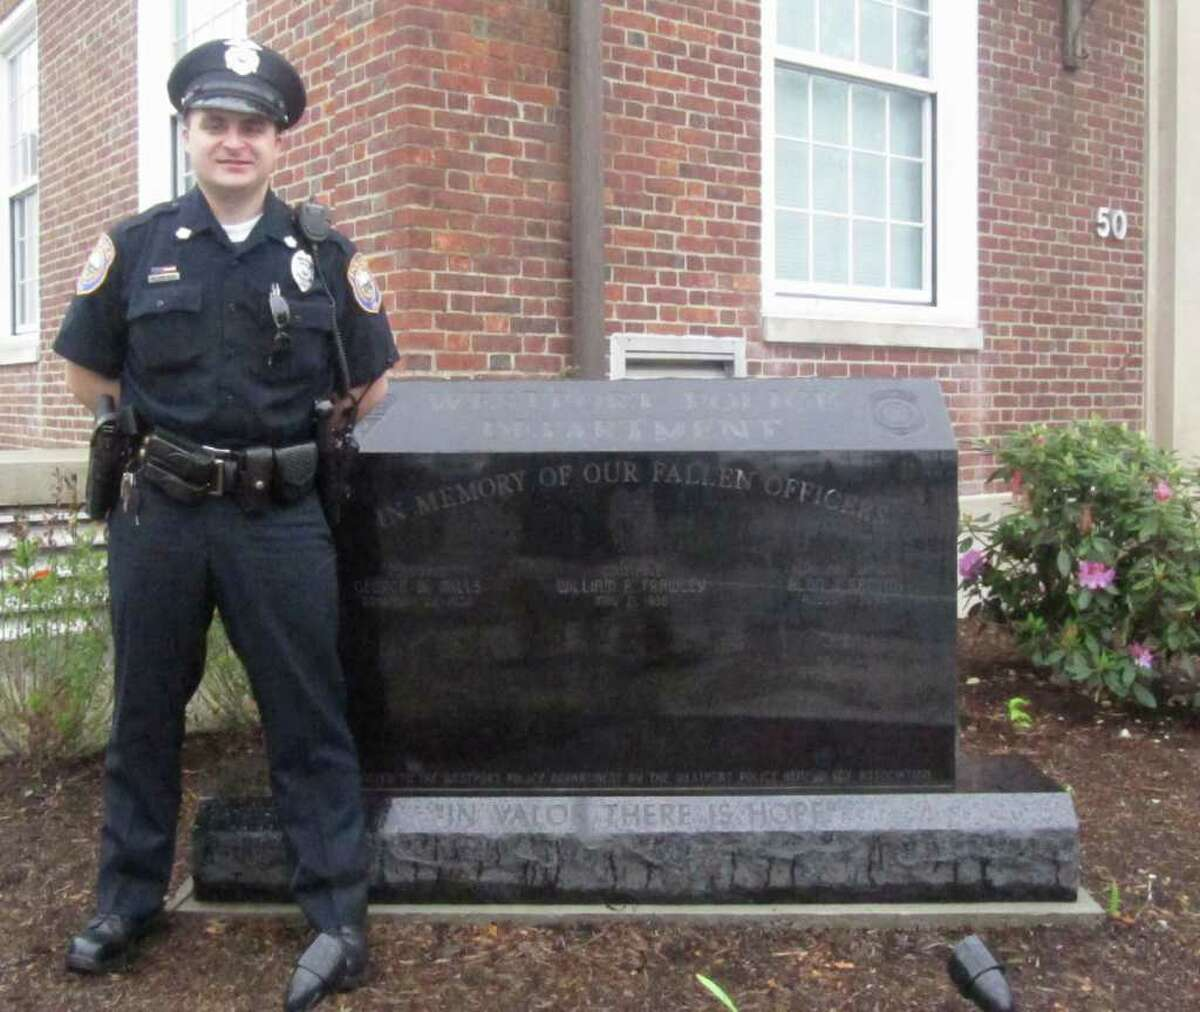 Westport Police Officer Casey Mezerewski stands by the new Westport Police Memorial in front of the Westport Police Department. The memorial pays tribute to the three men who have died in the line of duty while protecting and serving town residents. Casey's great-grandfather, Constable William Frawley, saw his life cut short at age 35 in 1936. The other two men on the memorial are Aldo Santini and George Mills.